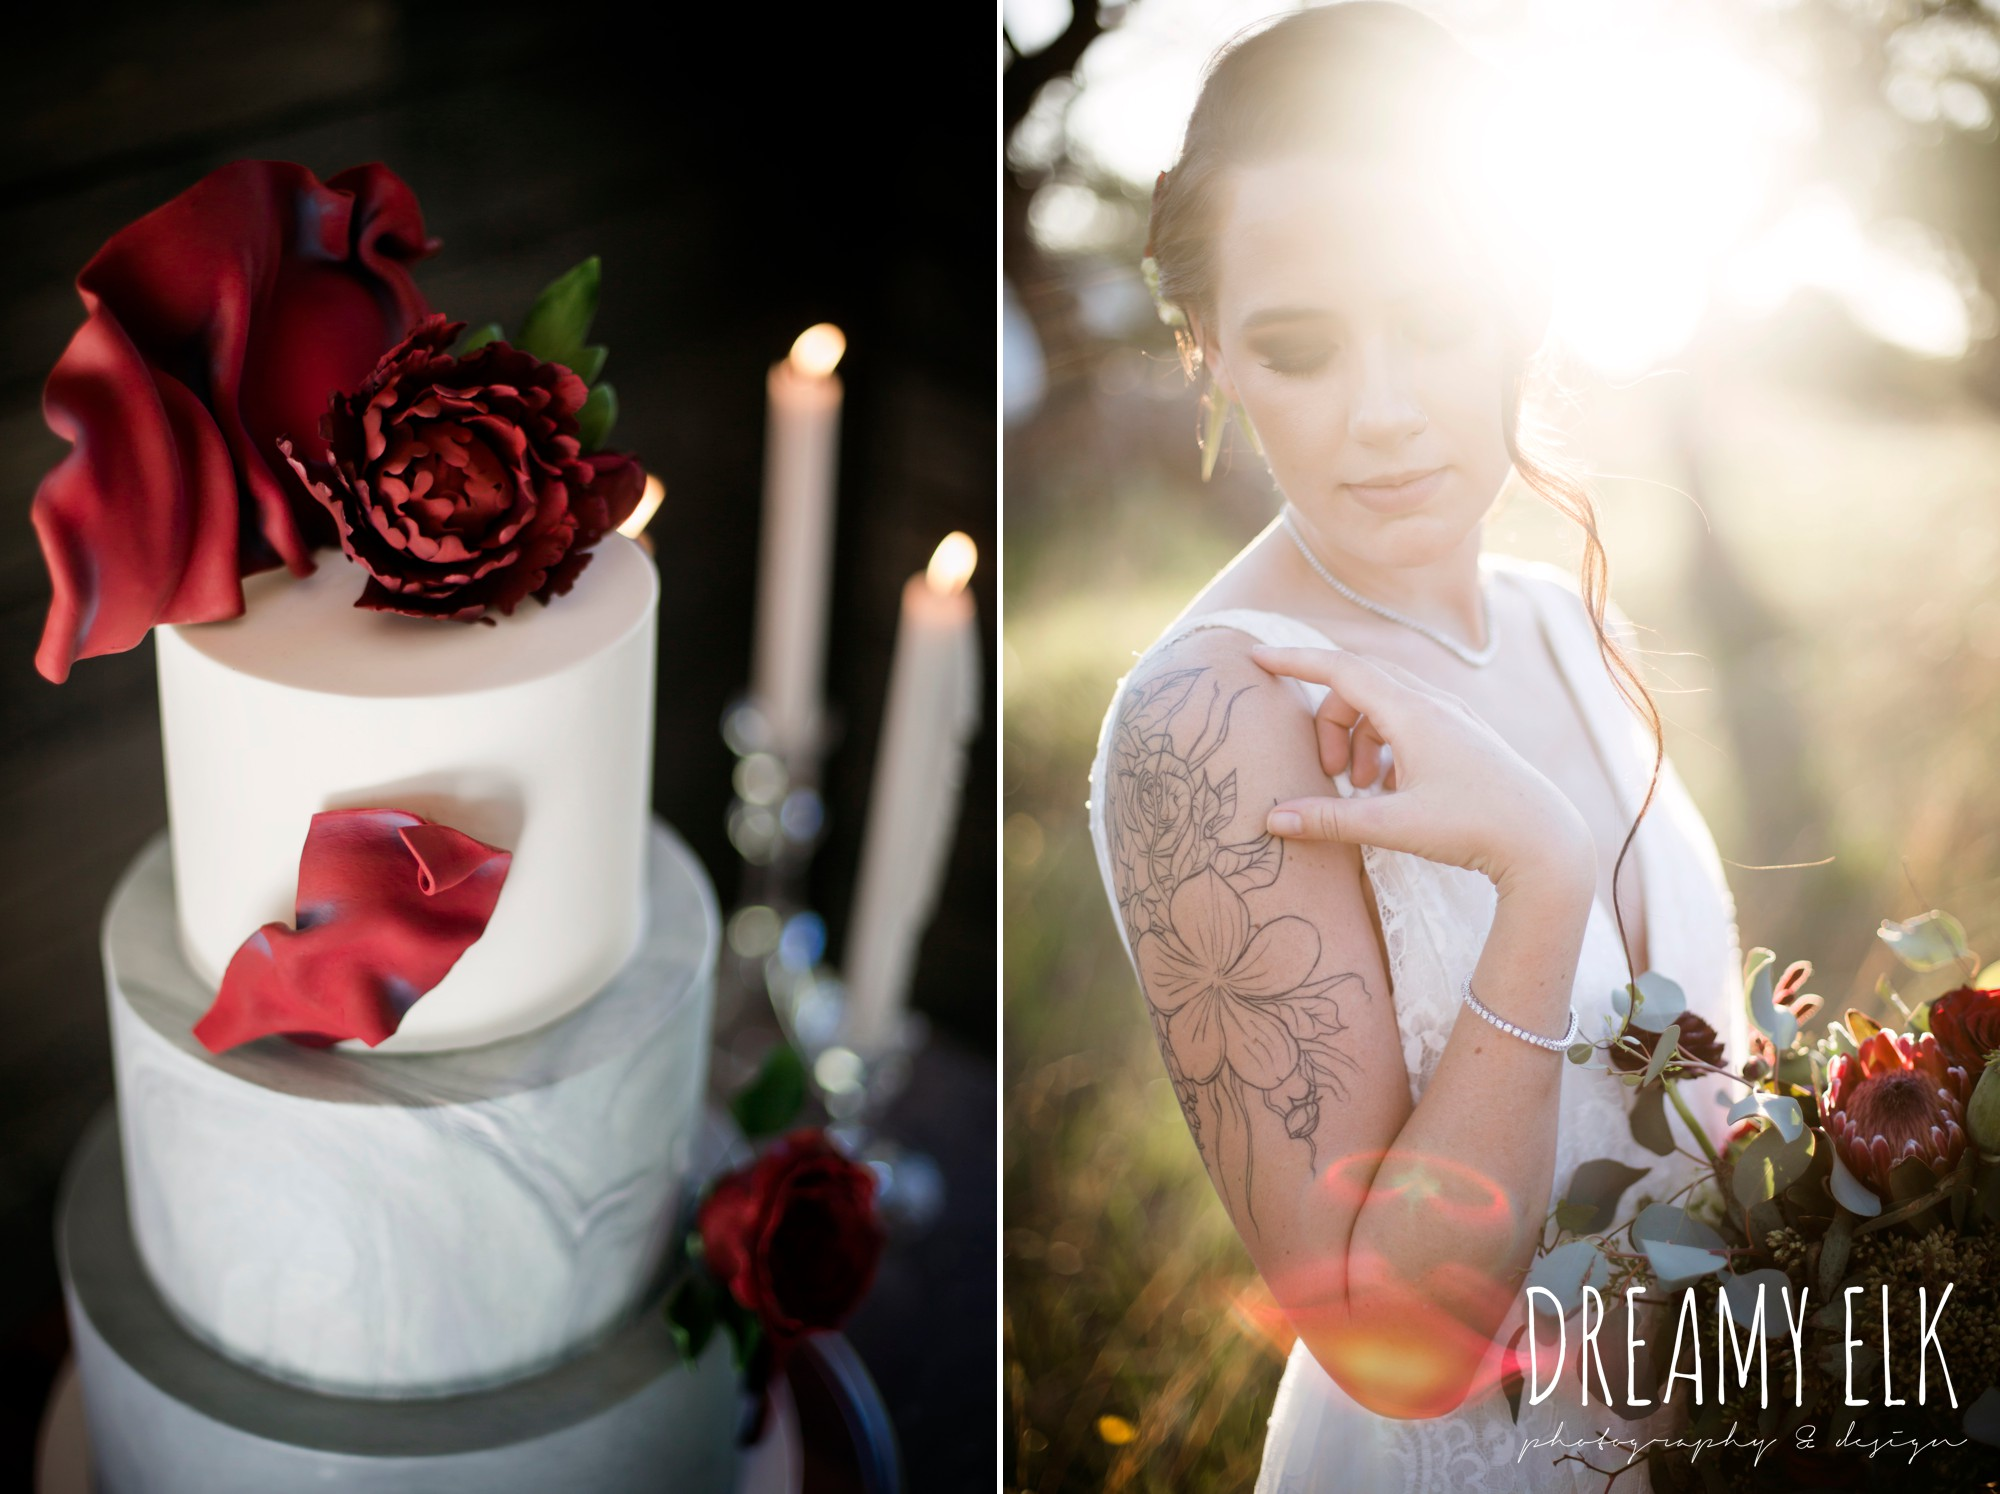 the cedars ranch, libby cole creations, saint isabel bridal, melange bridal, iced cakes and confections, moody rich delicate marfa inspired burgundy maroon black white spring styled wedding photo shoot {dreamy elk photography and design}